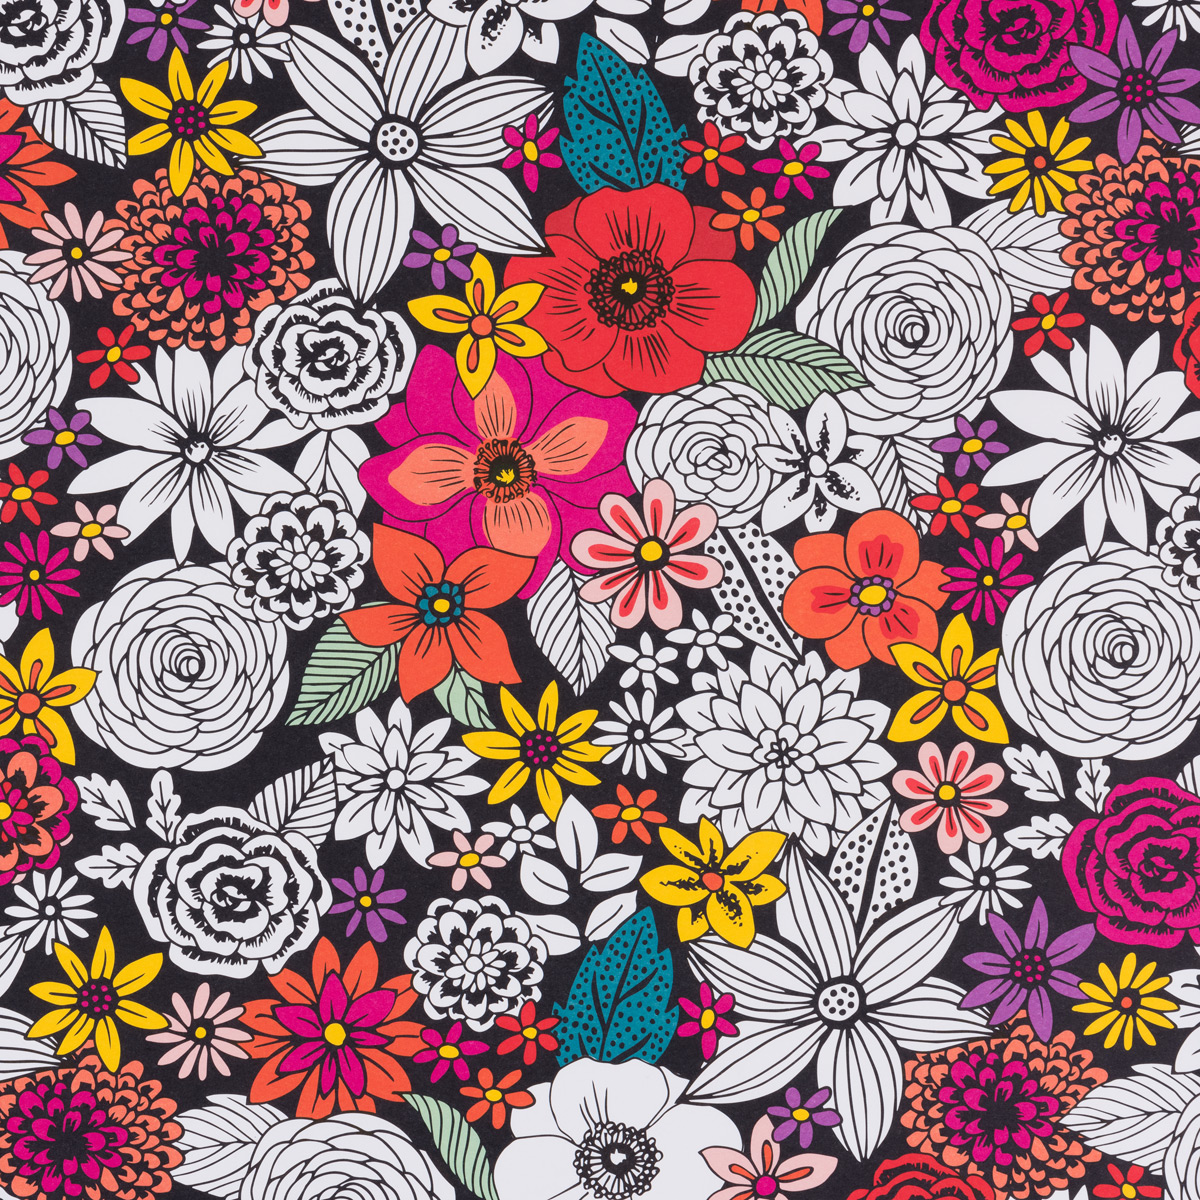 Wrap Sheets Sketch Floral